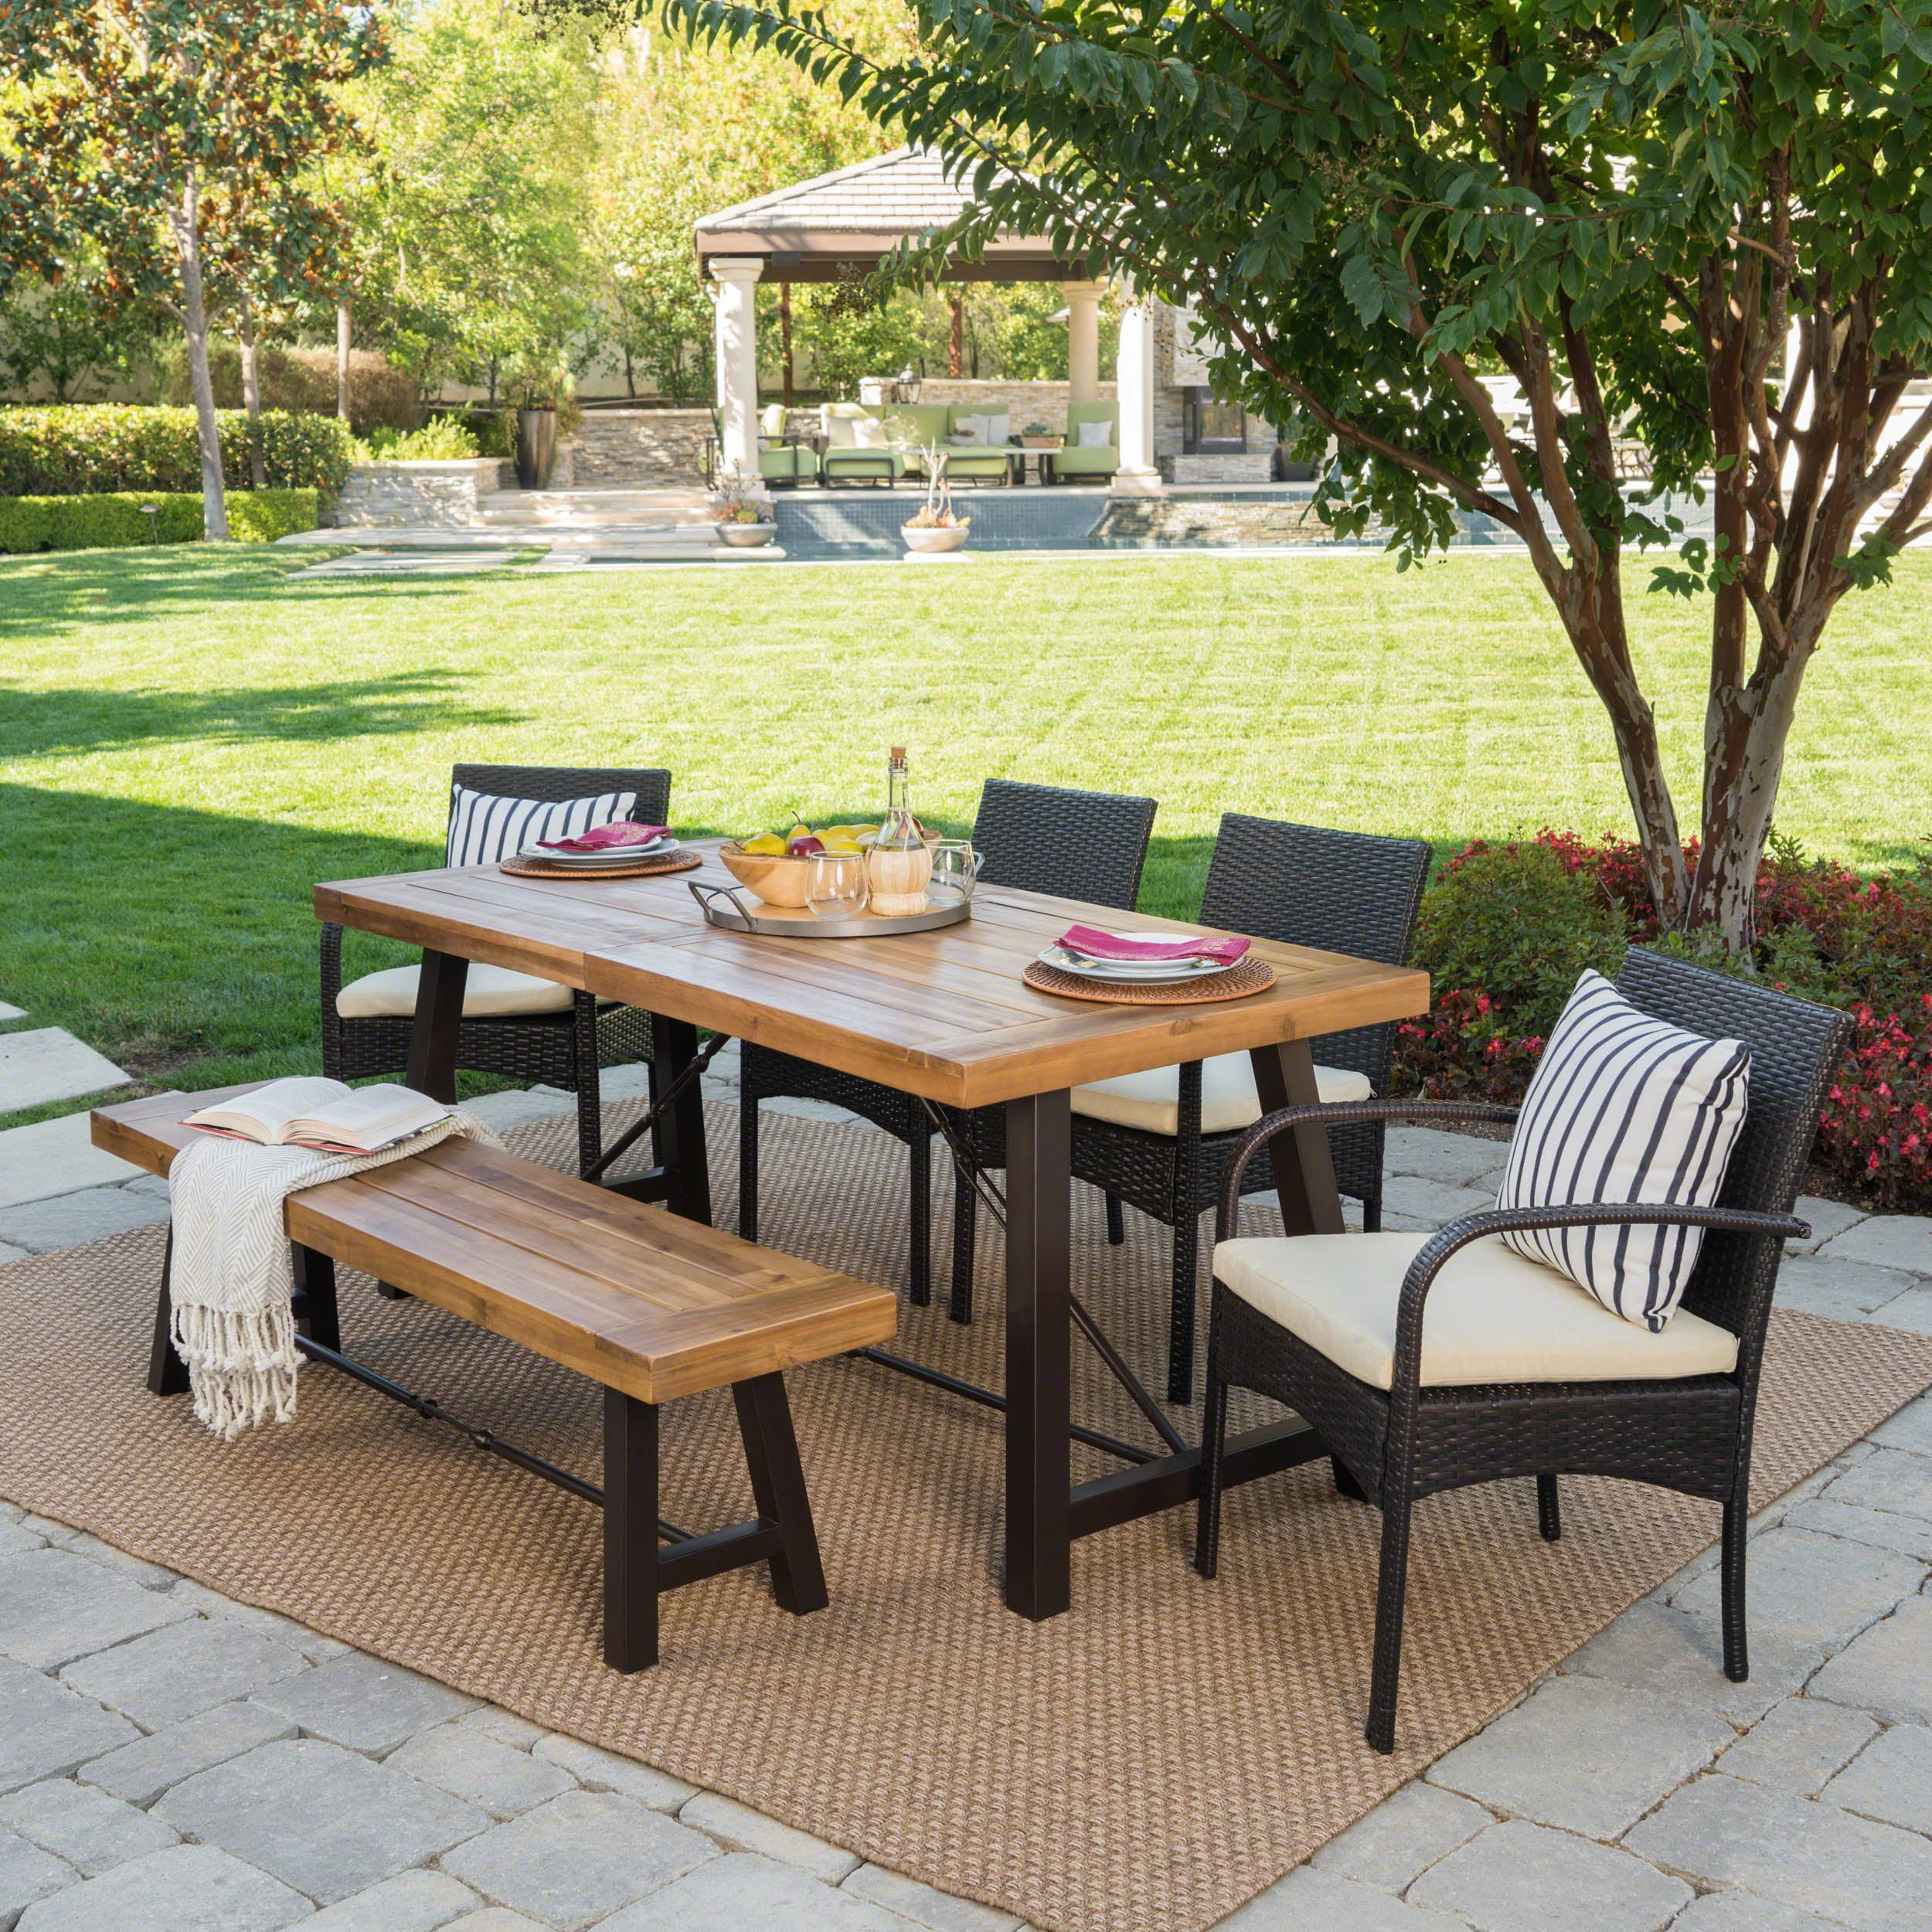 Wood Patio Furniture Find Great Outdoor Seating Dining